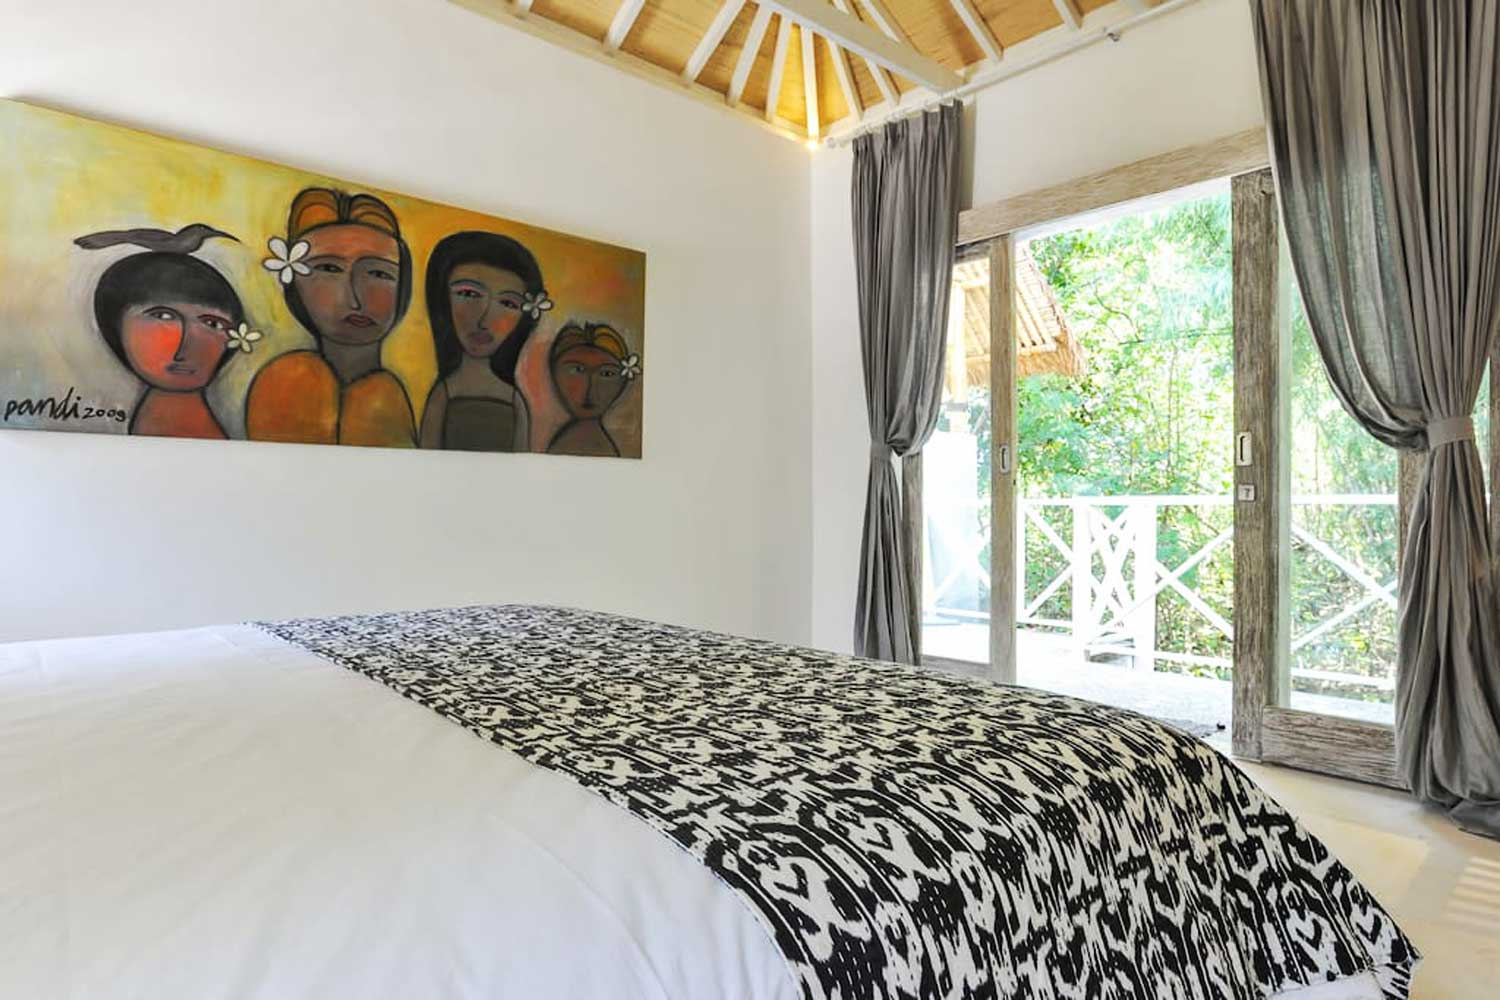 Luxury River Room 2 - Canggu Bali - Screw Them All - Blog